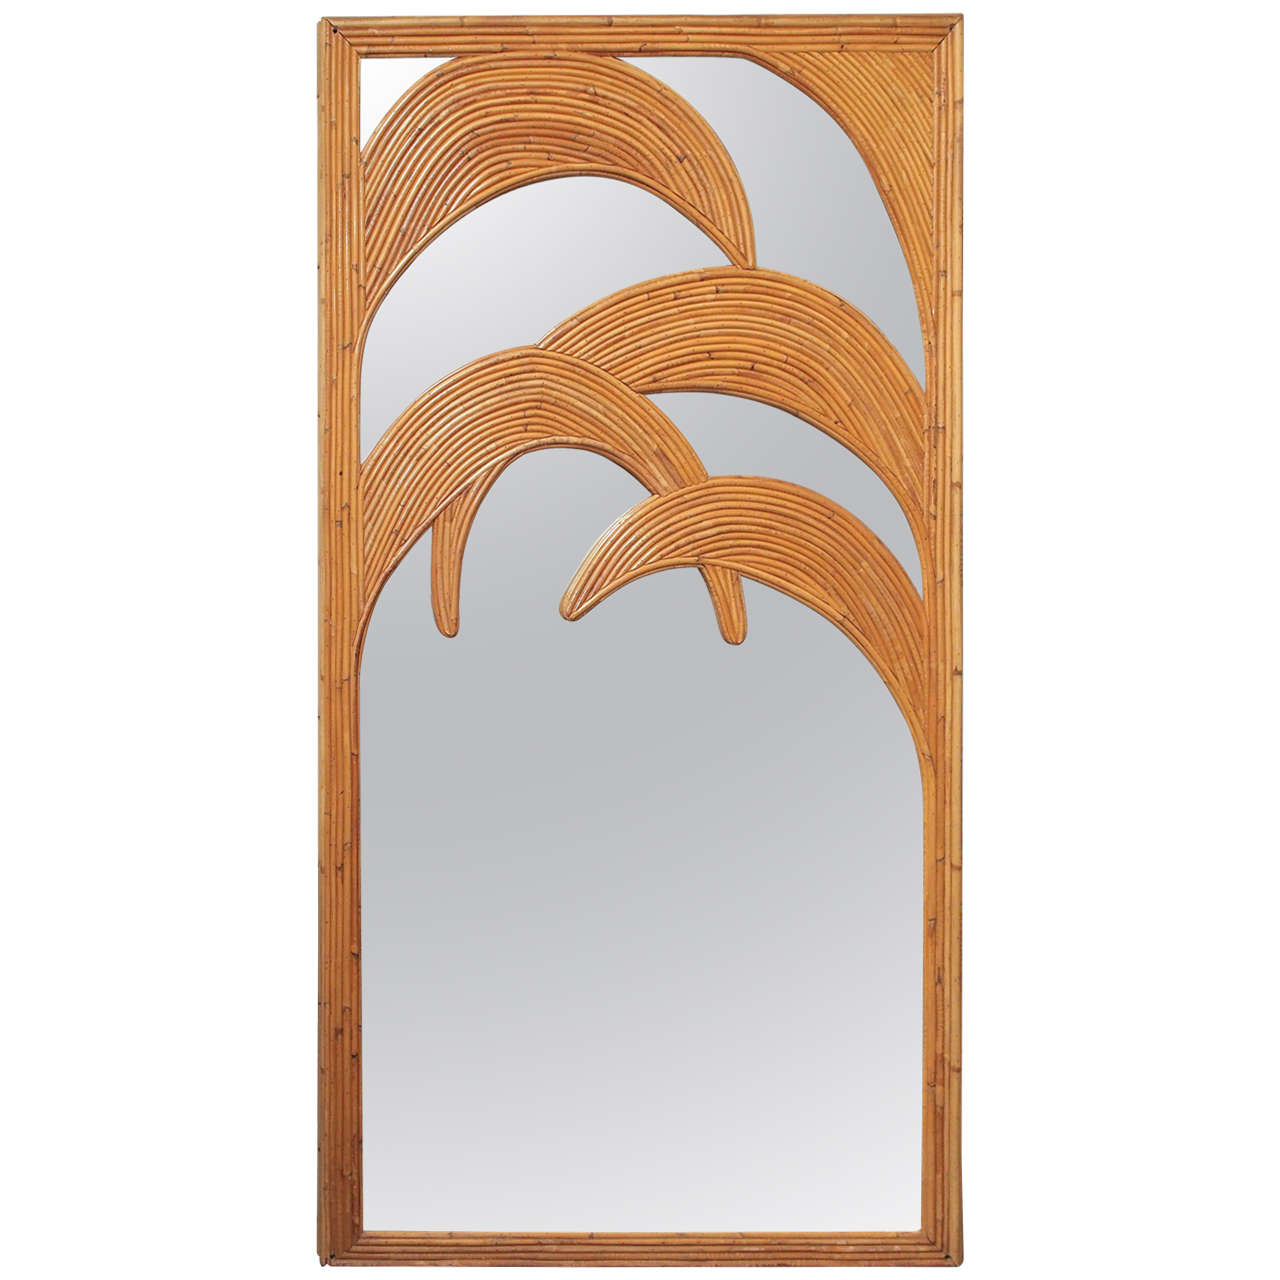 1970s Bamboo Mirror, France